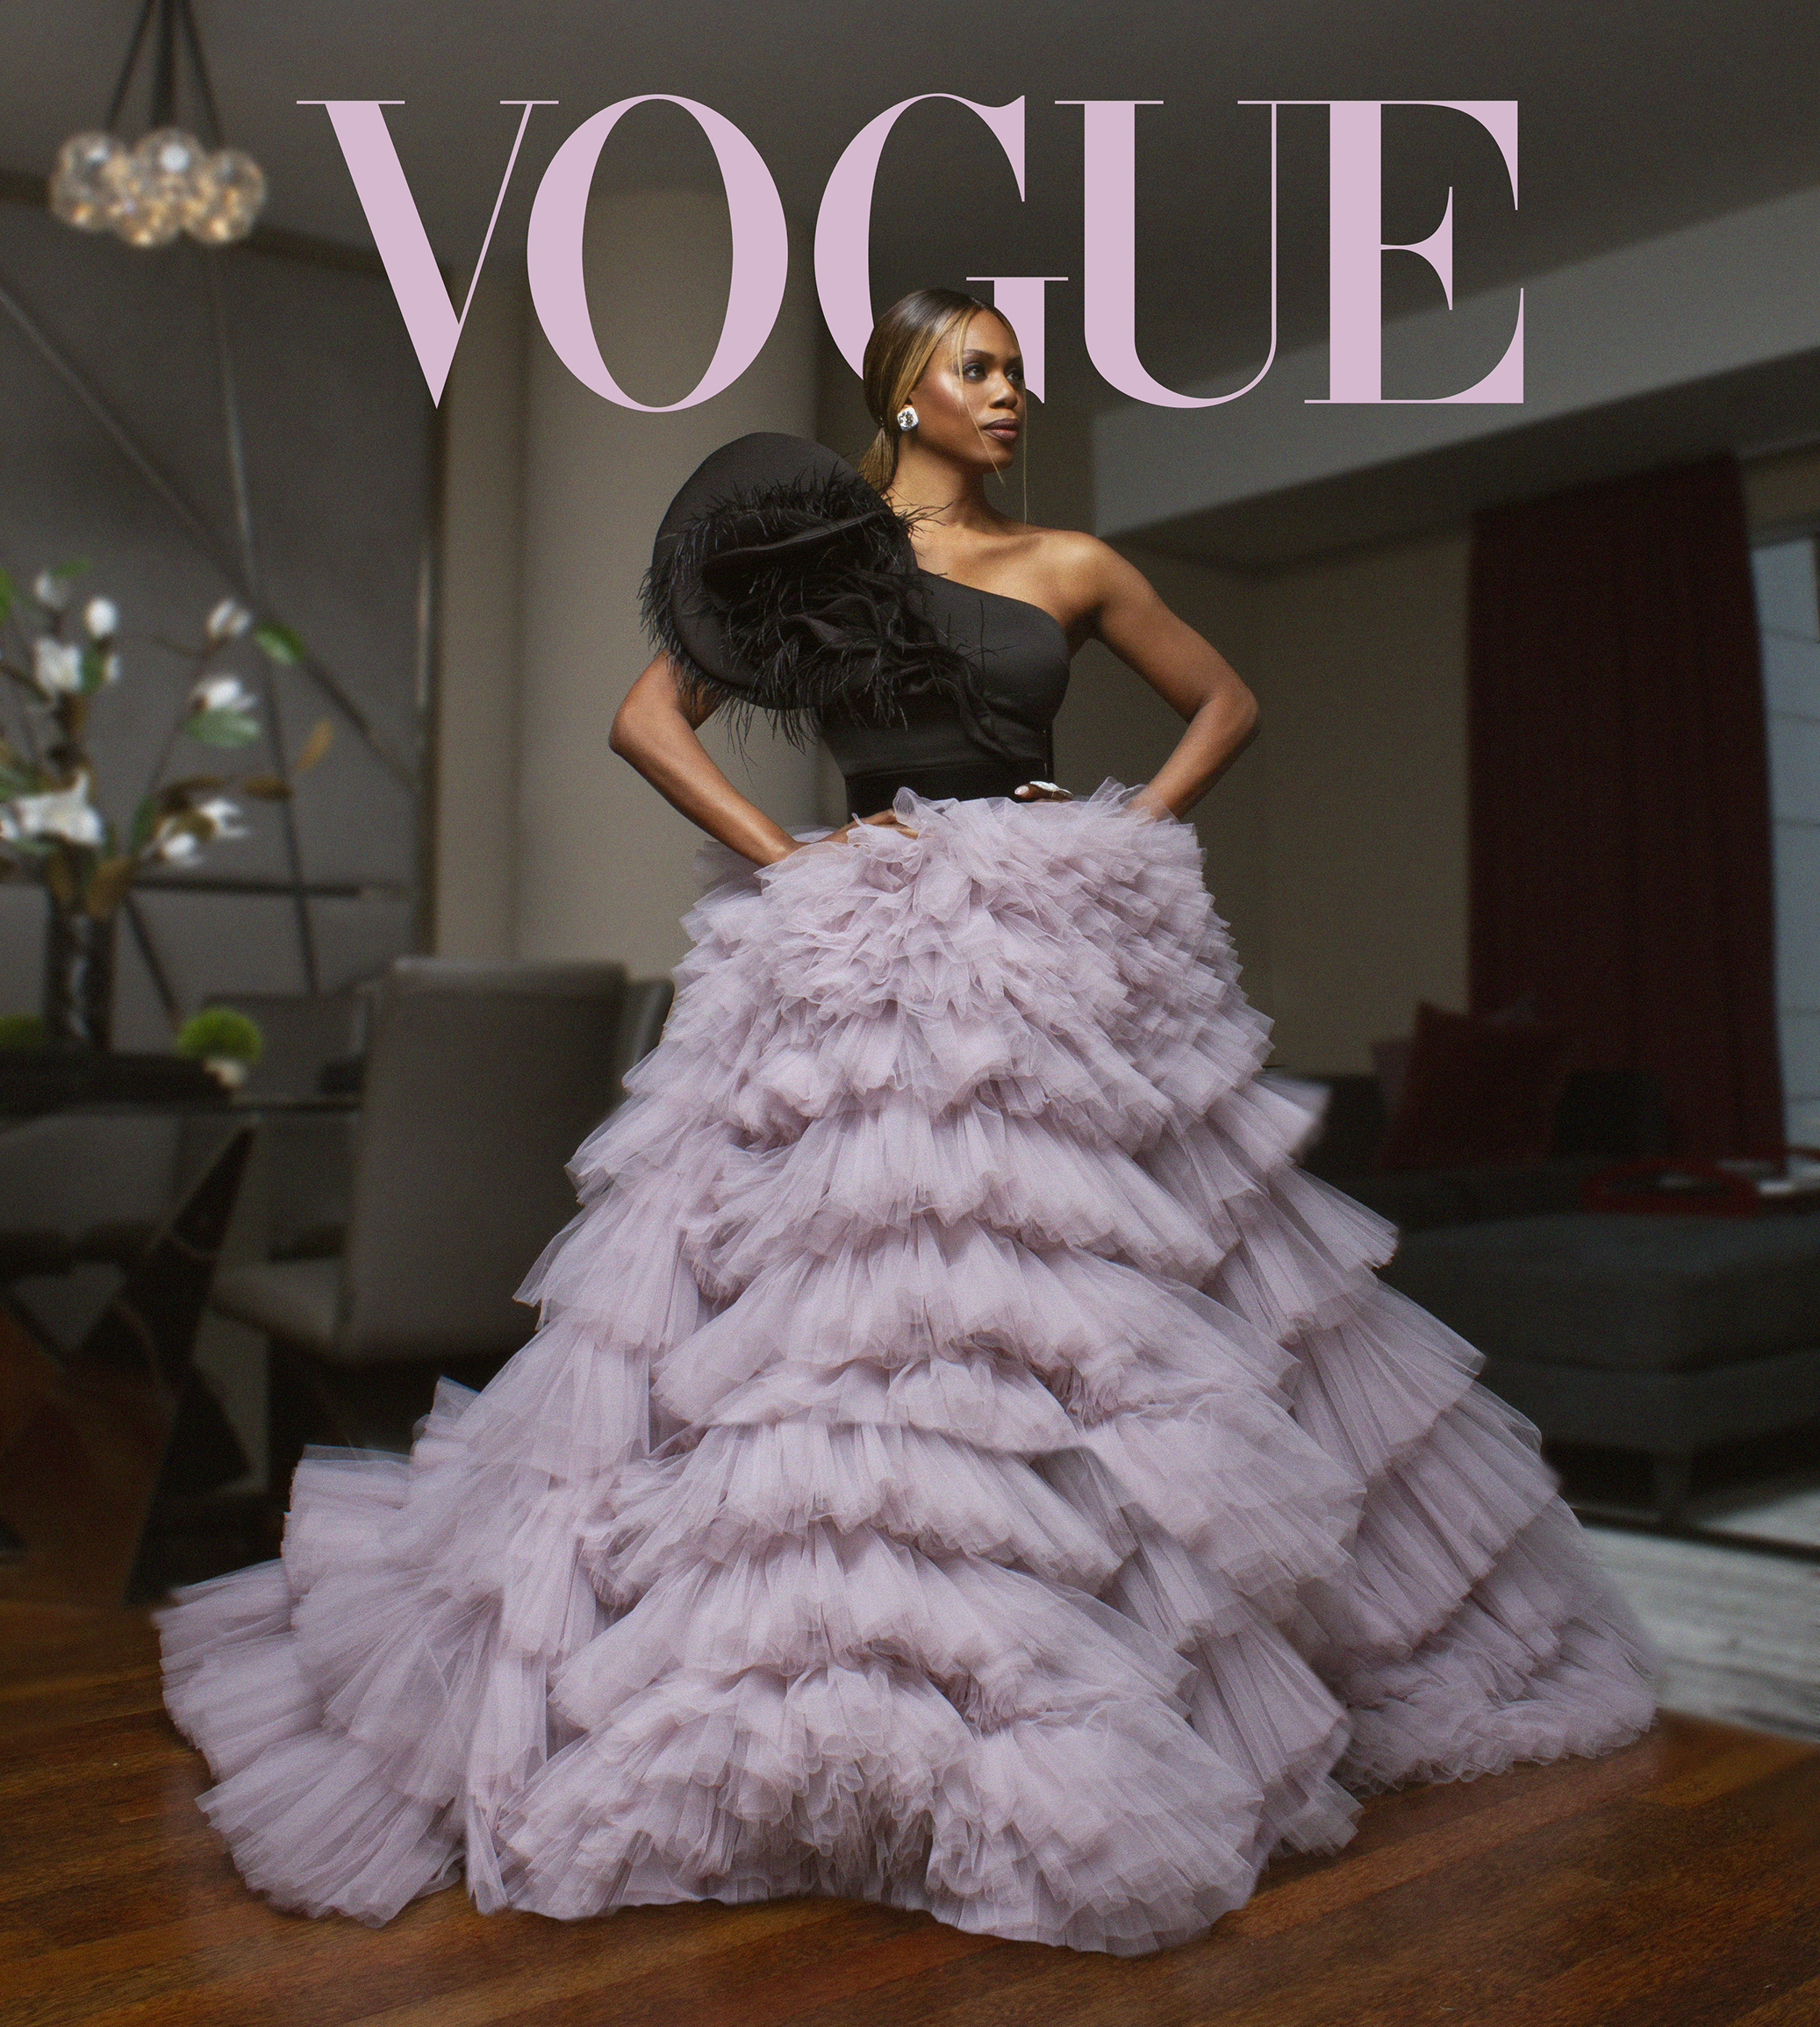 Laverne Cox for Vogue Photo By Tyr